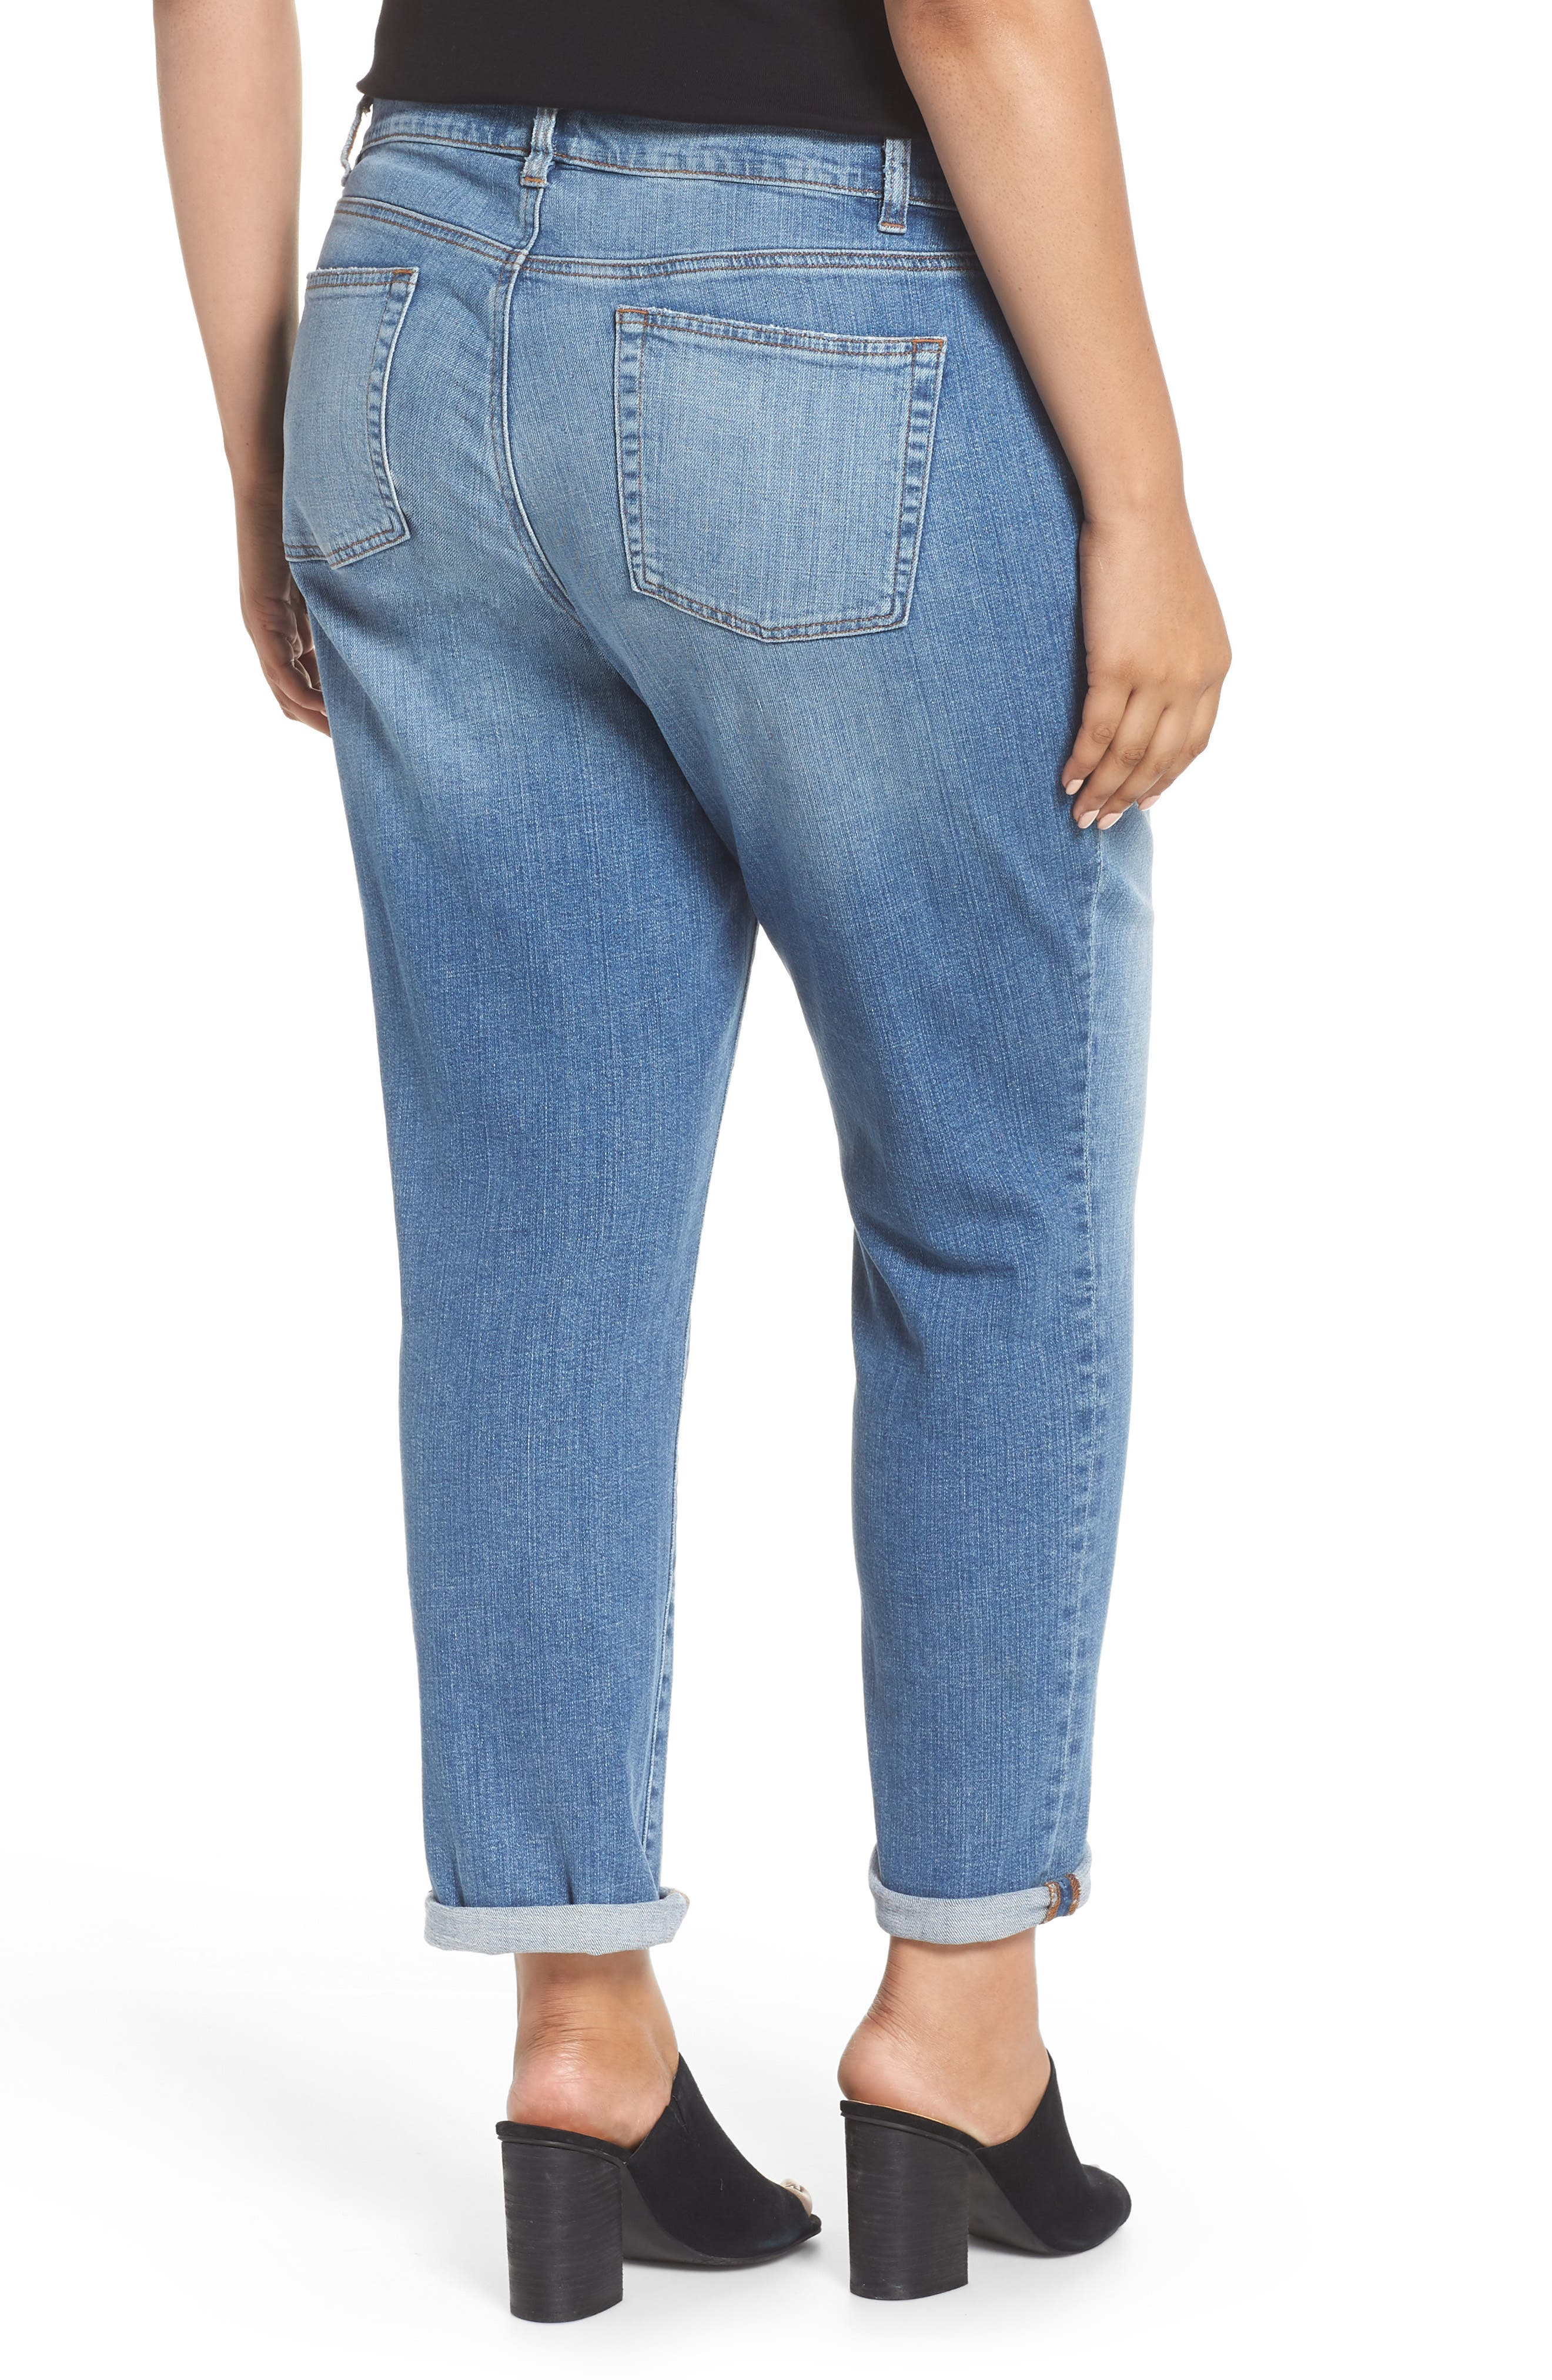 EILEEN FISHER, Stretch Organic Cotton Boyfriend Jeans, Alternate thumbnail 2, color, ABRADED SKY BLUE